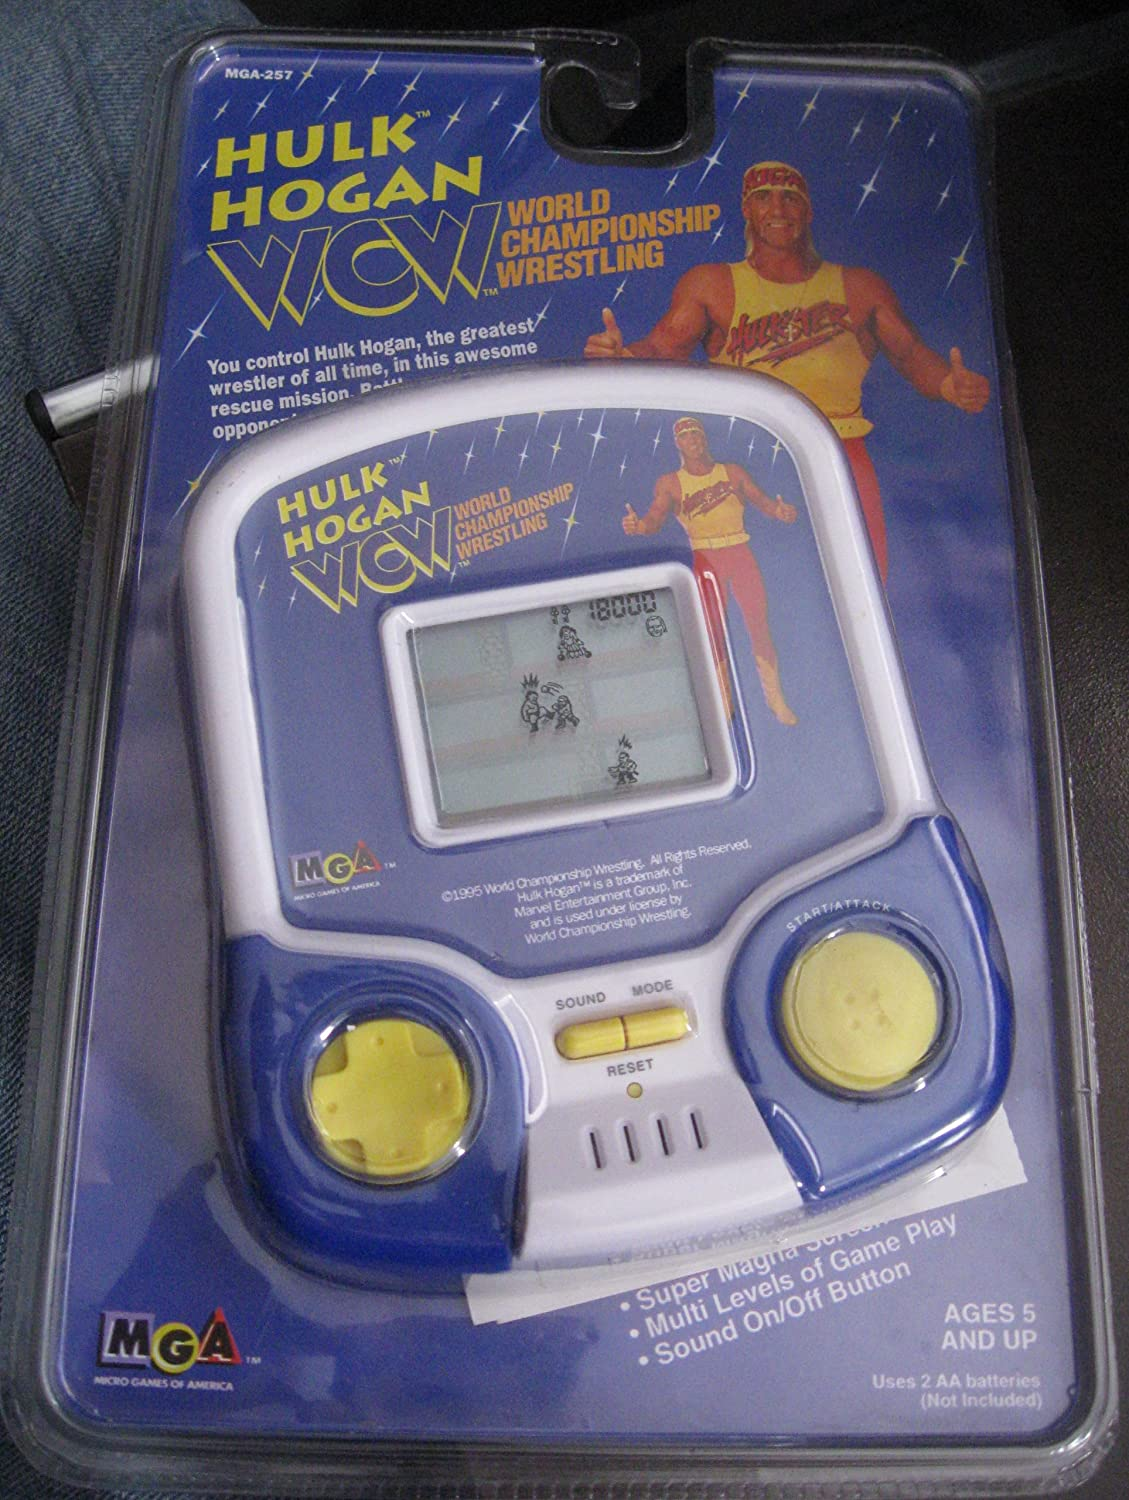 Hulk Hogan's WCW Electronic Handheld Wrestling Game by MGA B006AT1QKI